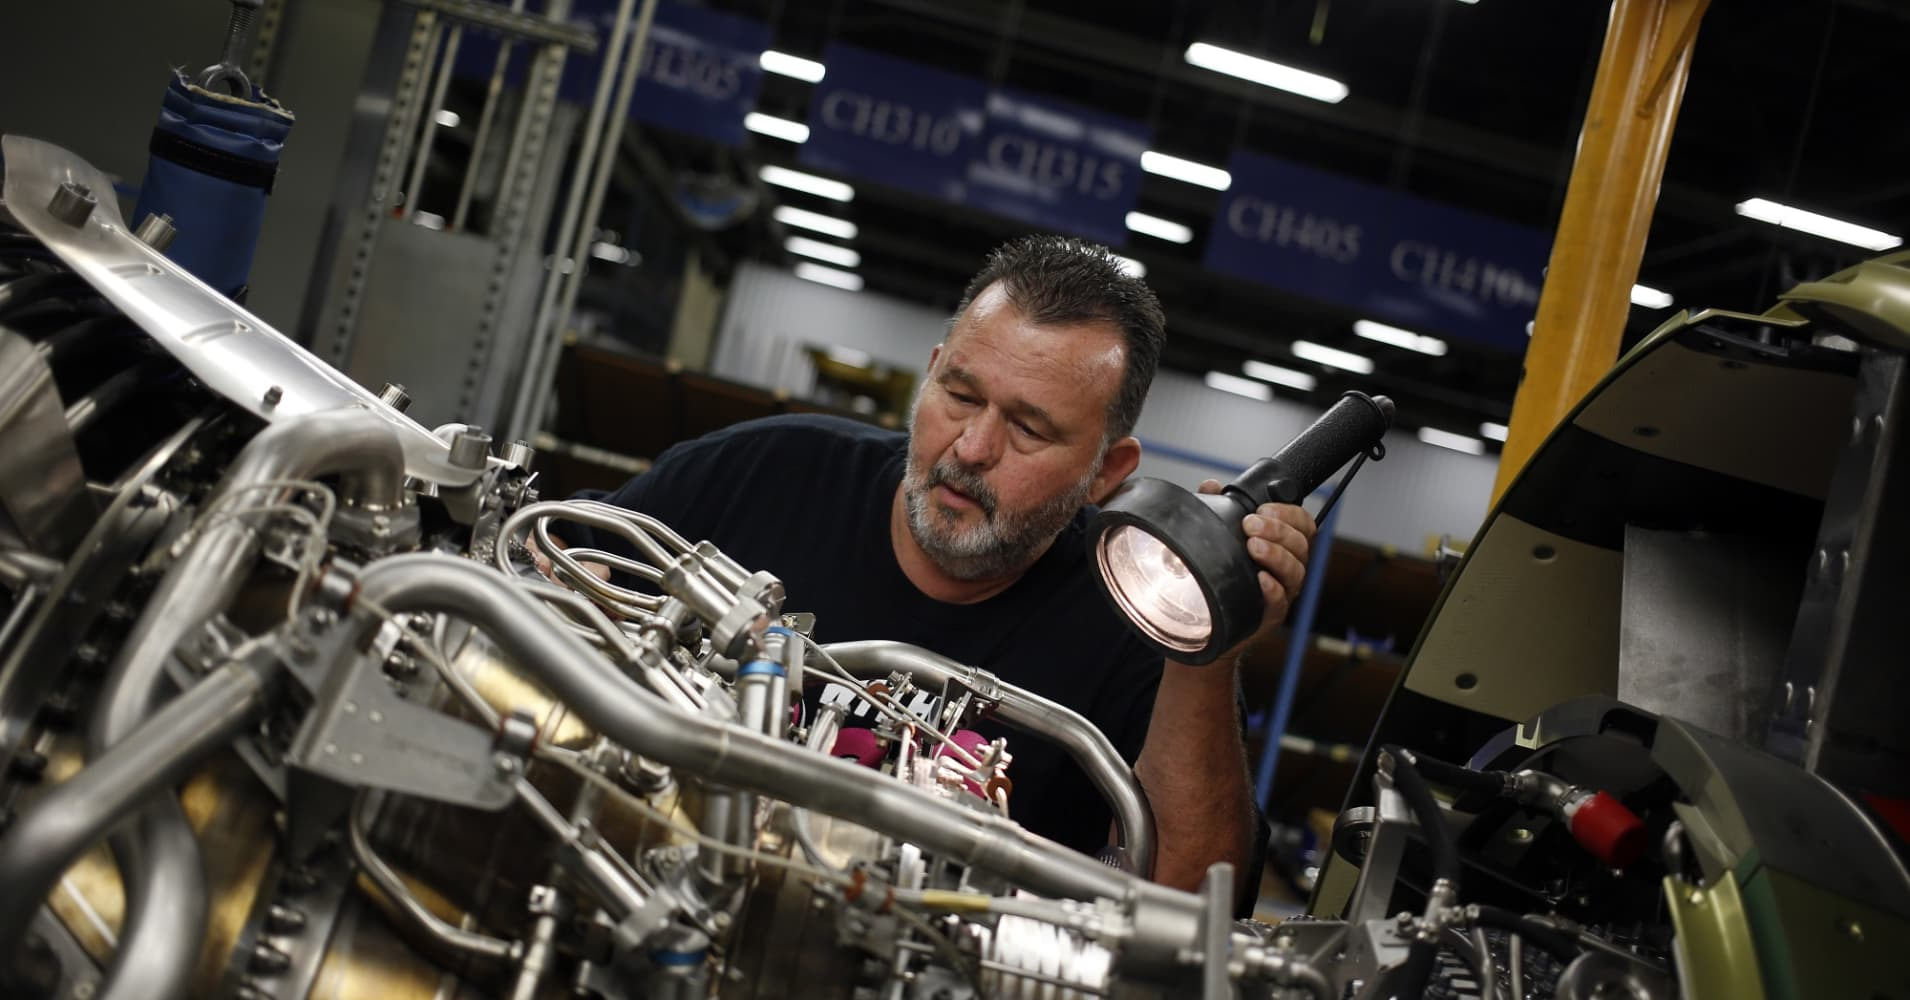 A production assembly mechanic performs a final inspection on a CFM56-7 jet engine.